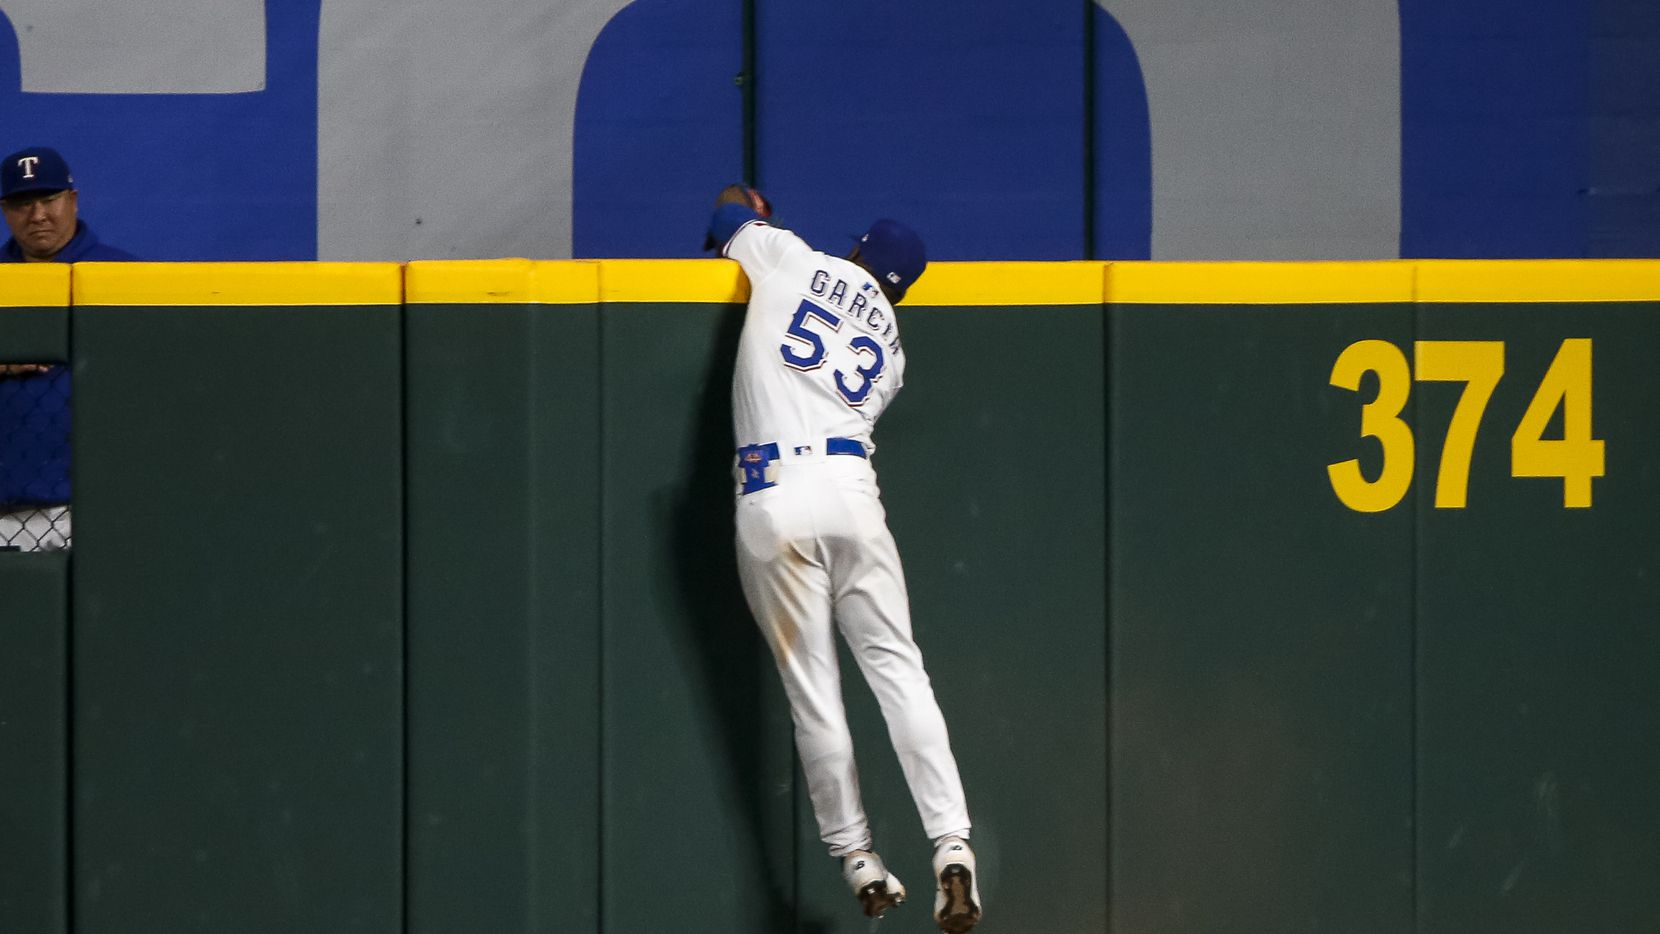 Texas Rangers right fielder Adolis Garcia (53) makes a leaping catch over the outfield wall to steal a home run from Seattle Mariners center fielder Jake Fraley (28) during the eleventh inning at Globe Life Field on Thursday, Aug. 19, 2021, in Arlington.